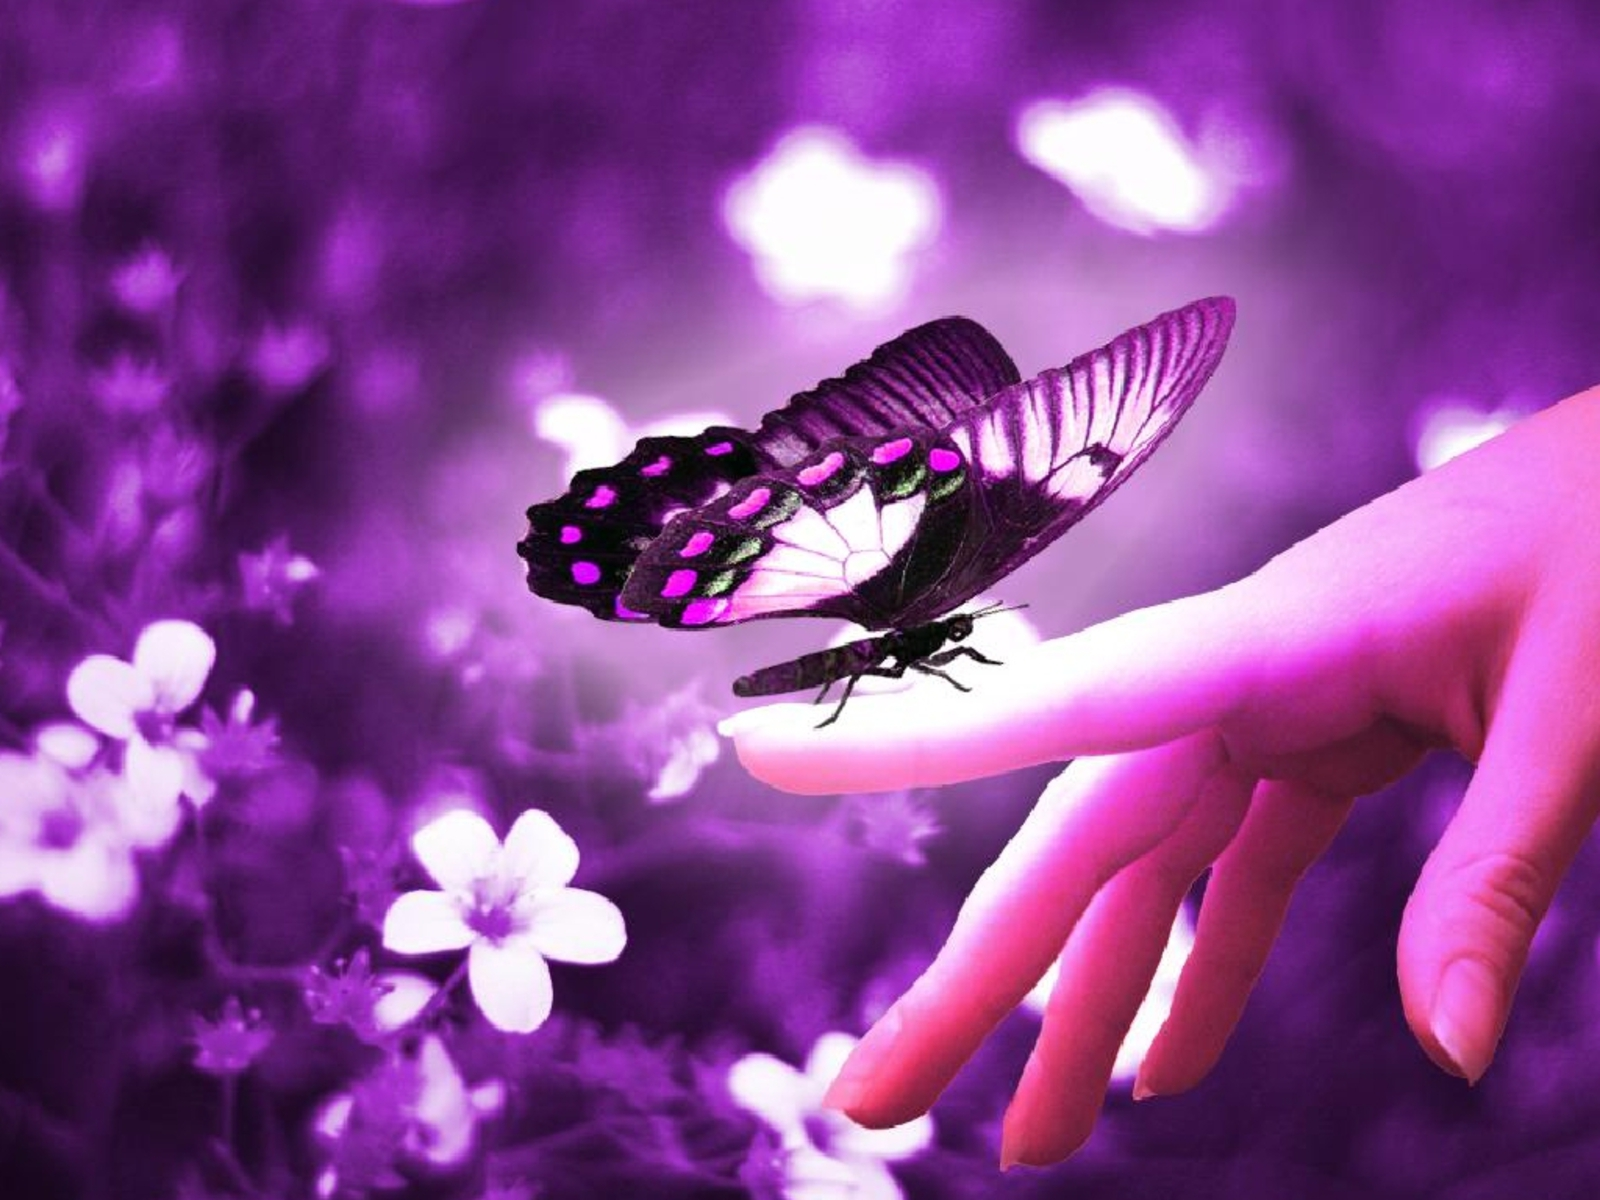 To Holley:  A Beautiful Butterfly!